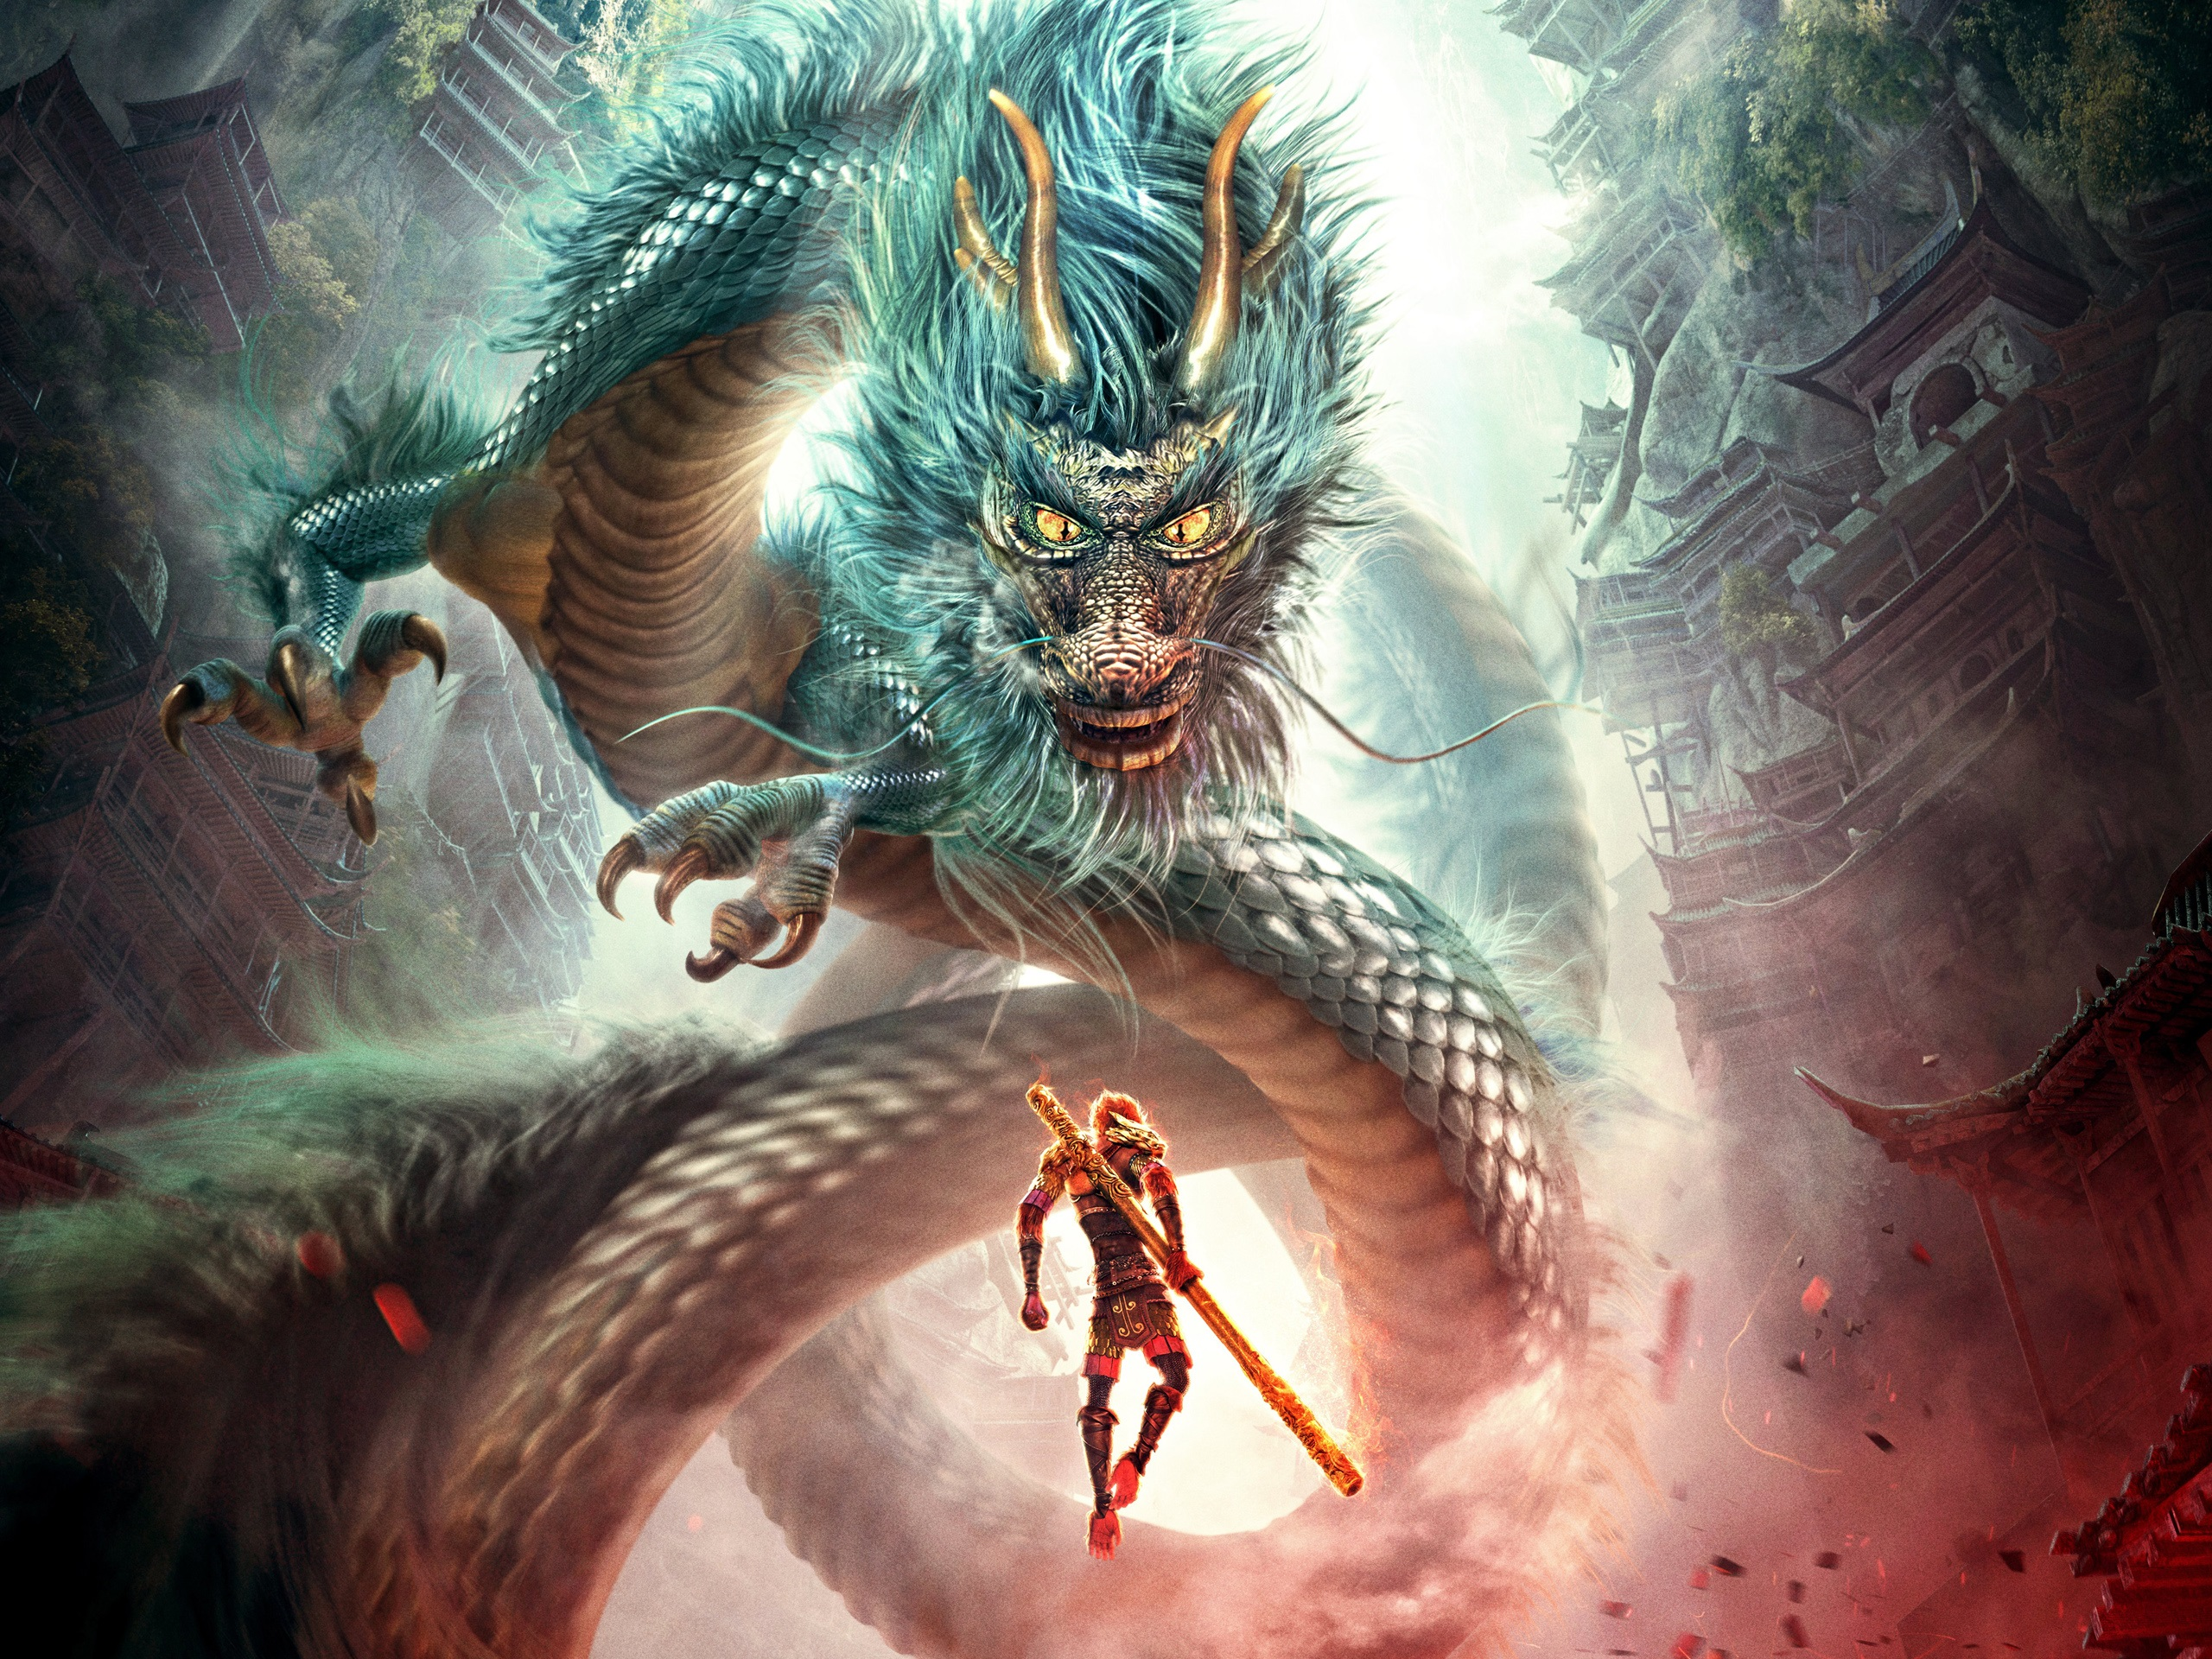 Wallpaper Monkey King Hero Is Back Fight Dragon 2560x1920